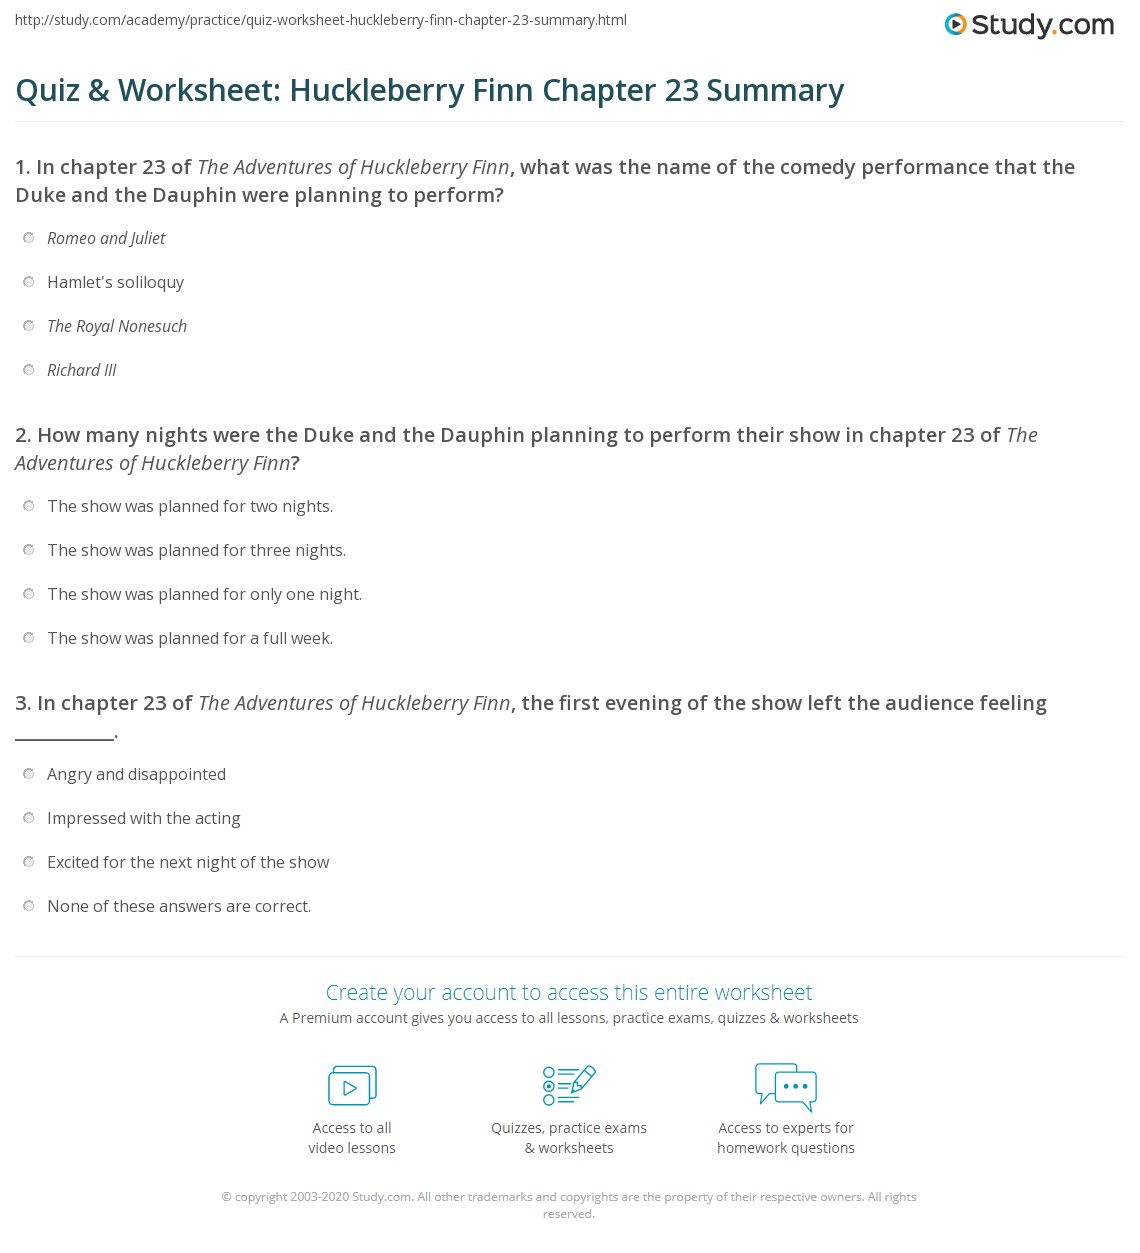 quiz worksheet huckleberry finn chapter 23 summary com print the adventures of huckleberry finn chapter 23 summary worksheet